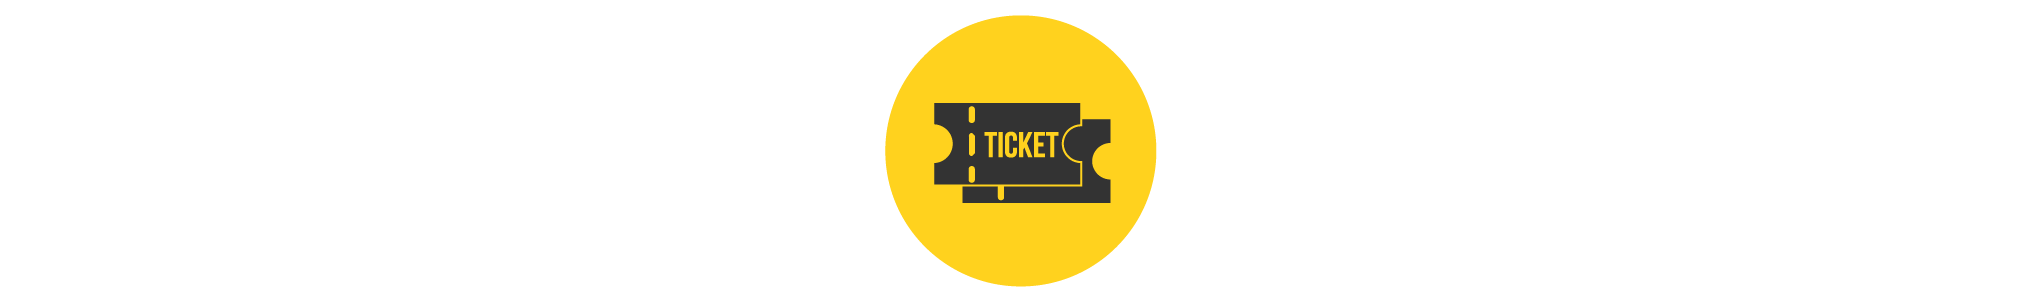 TICKETS AND DISCOUNT IN THE NETHERLANDS